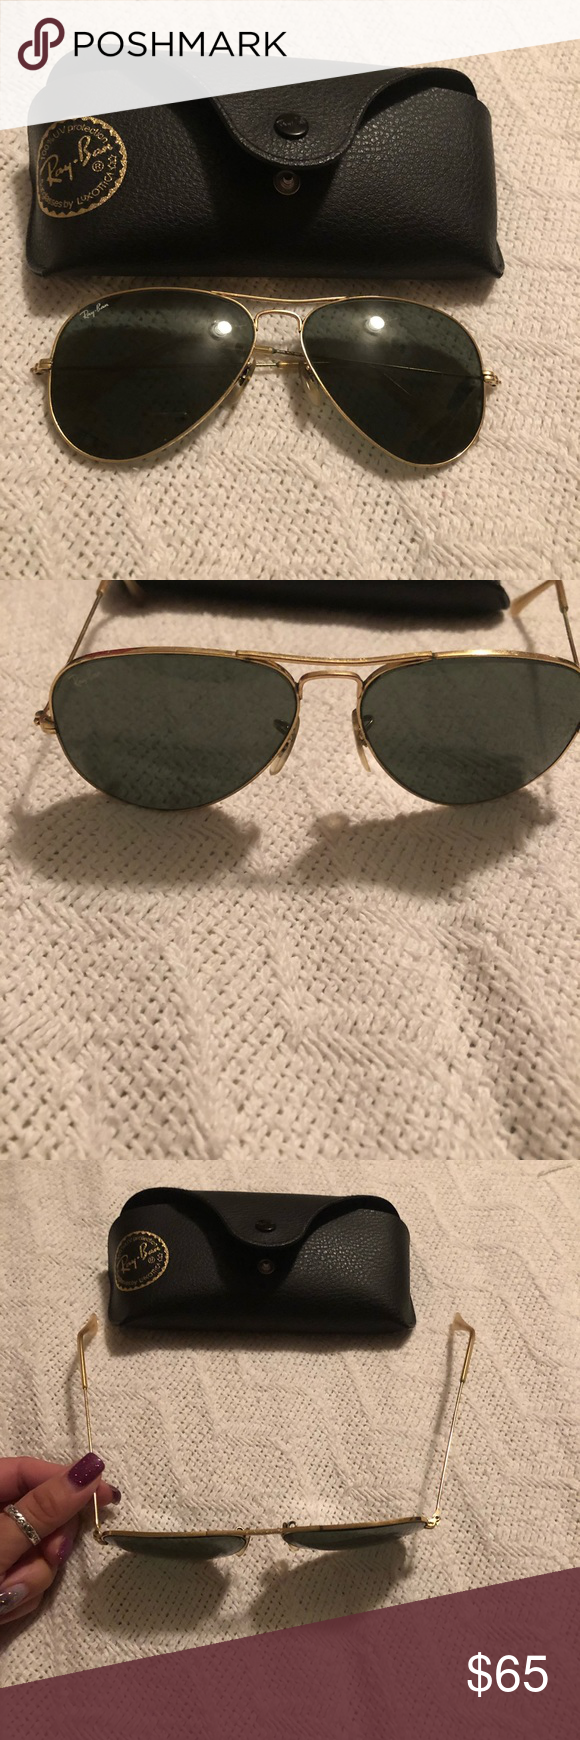 16bb159a6422 Black aviator sunglasses ray ban Black aviator sunglasses Arm bands needs  to be tighten as they have stretched out to sides as seen in picture.